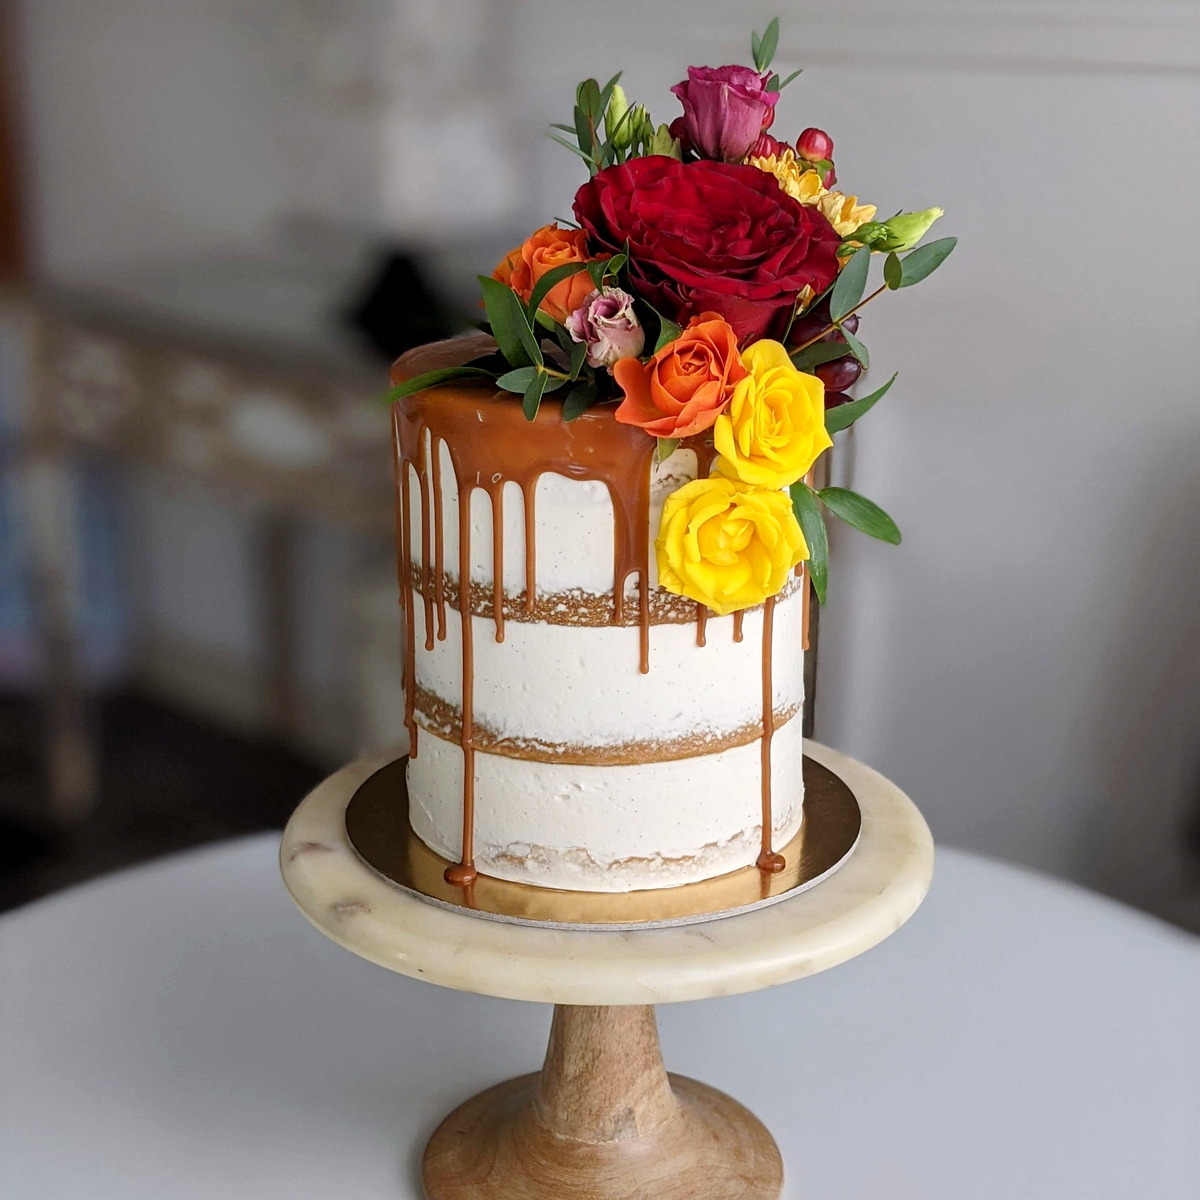 Whippt Kitchen - Thanksgiving Auction cake 3